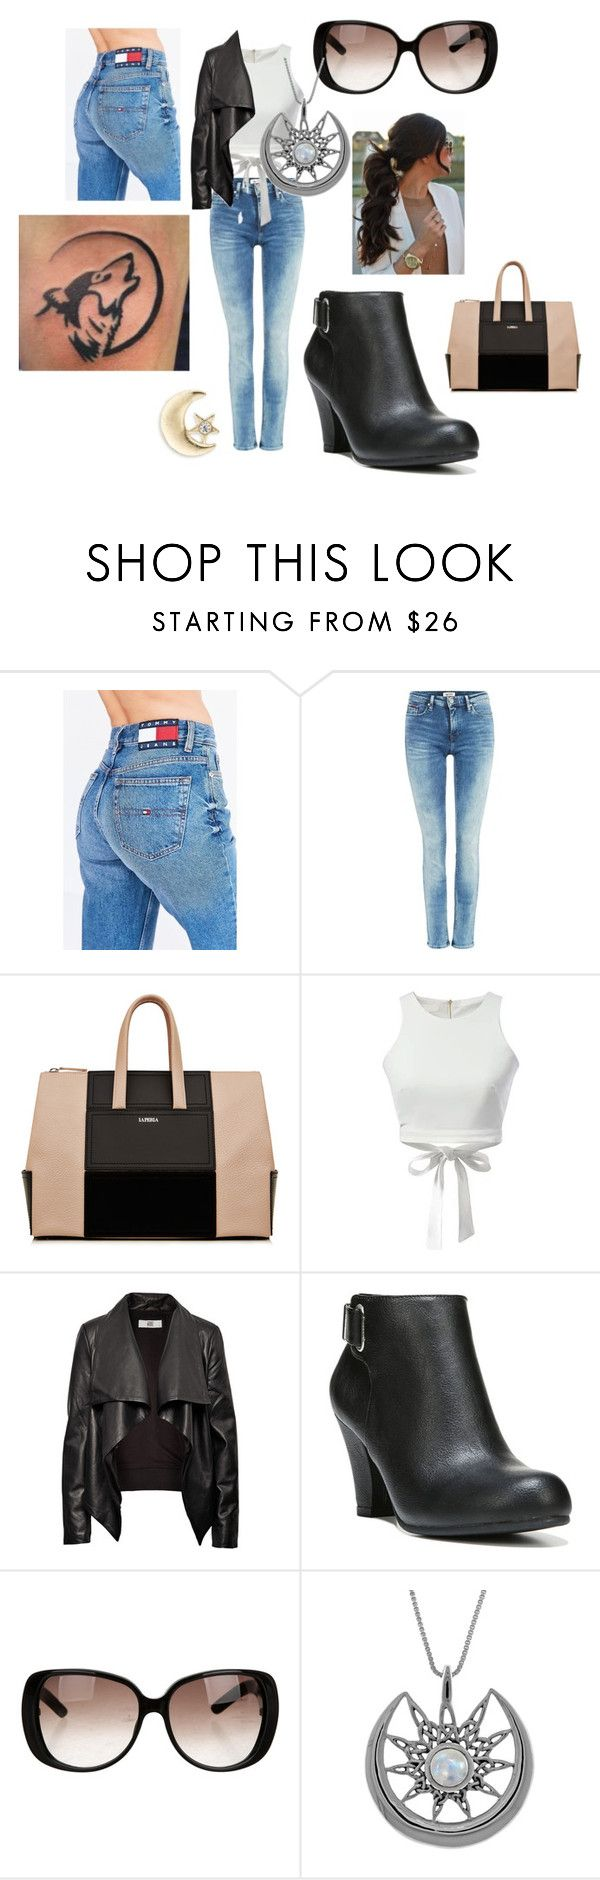 """""""Guardian"""" by jellyfishnamedsquid on Polyvore featuring Tommy Hilfiger, WithChic, HIDE, Fergalicious, Gucci, Carolina Glamour Collection and Design Lab"""